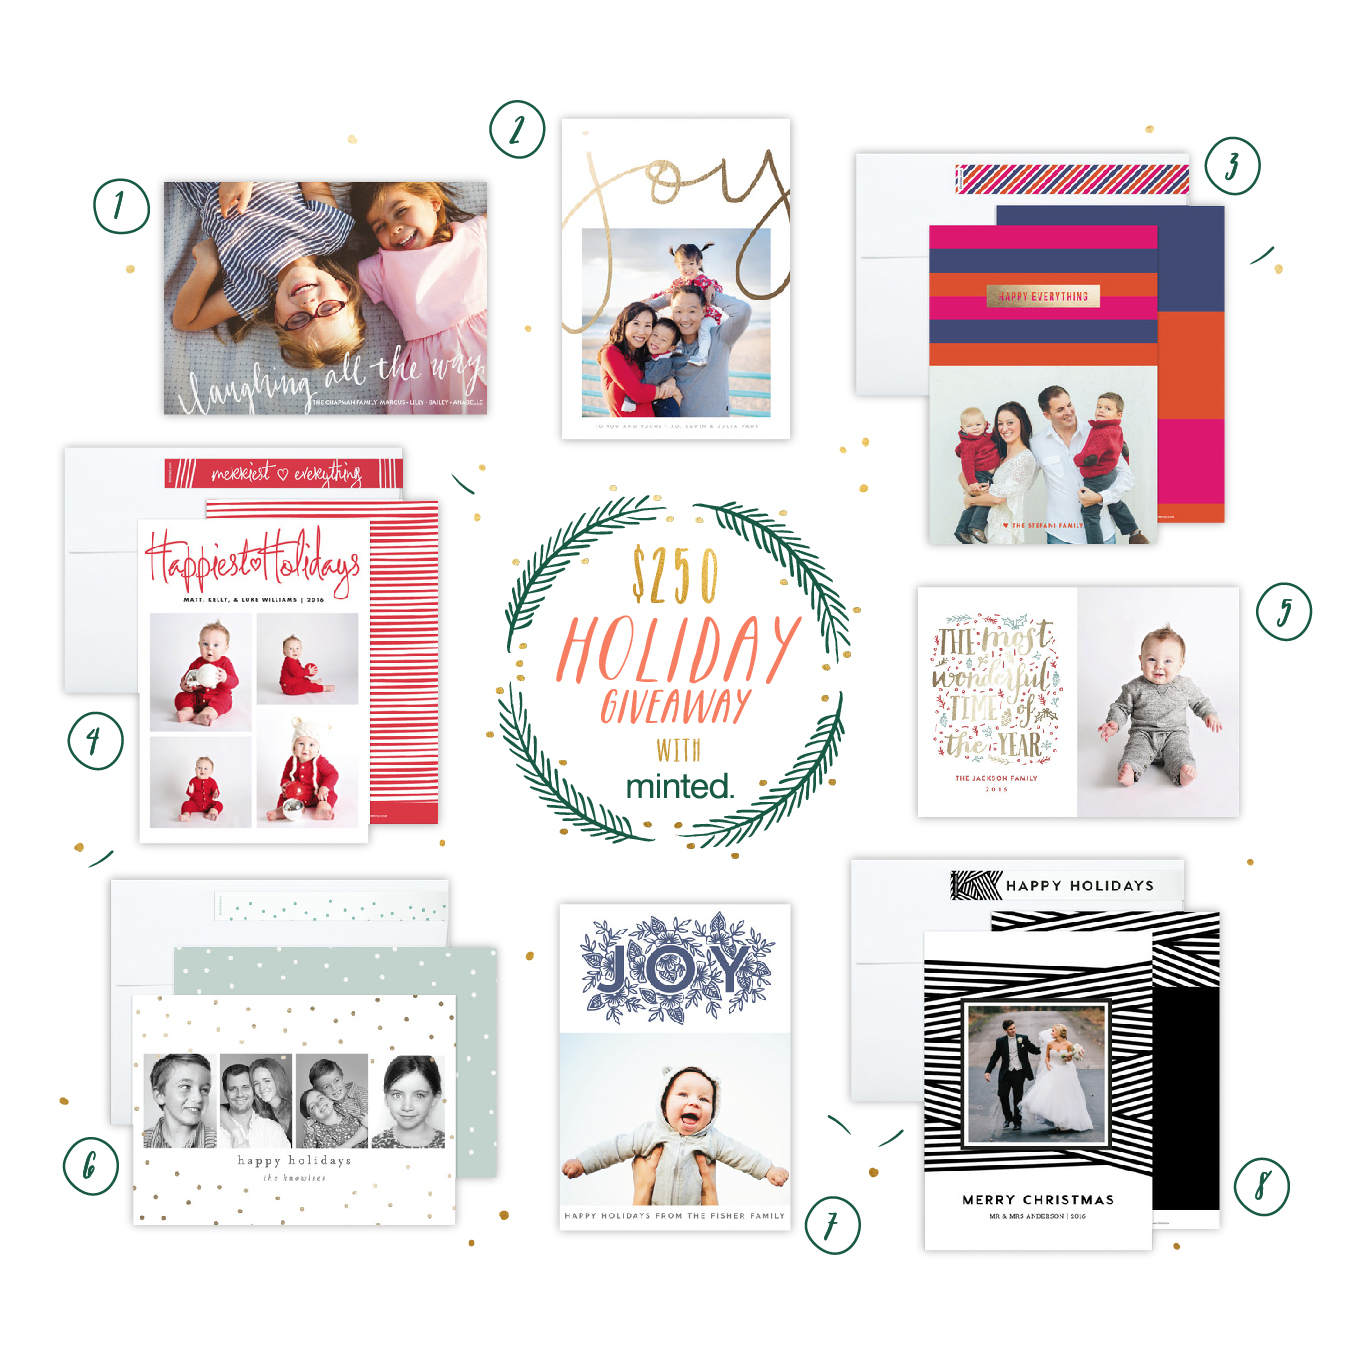 alfs_minted-holiday-giveaway